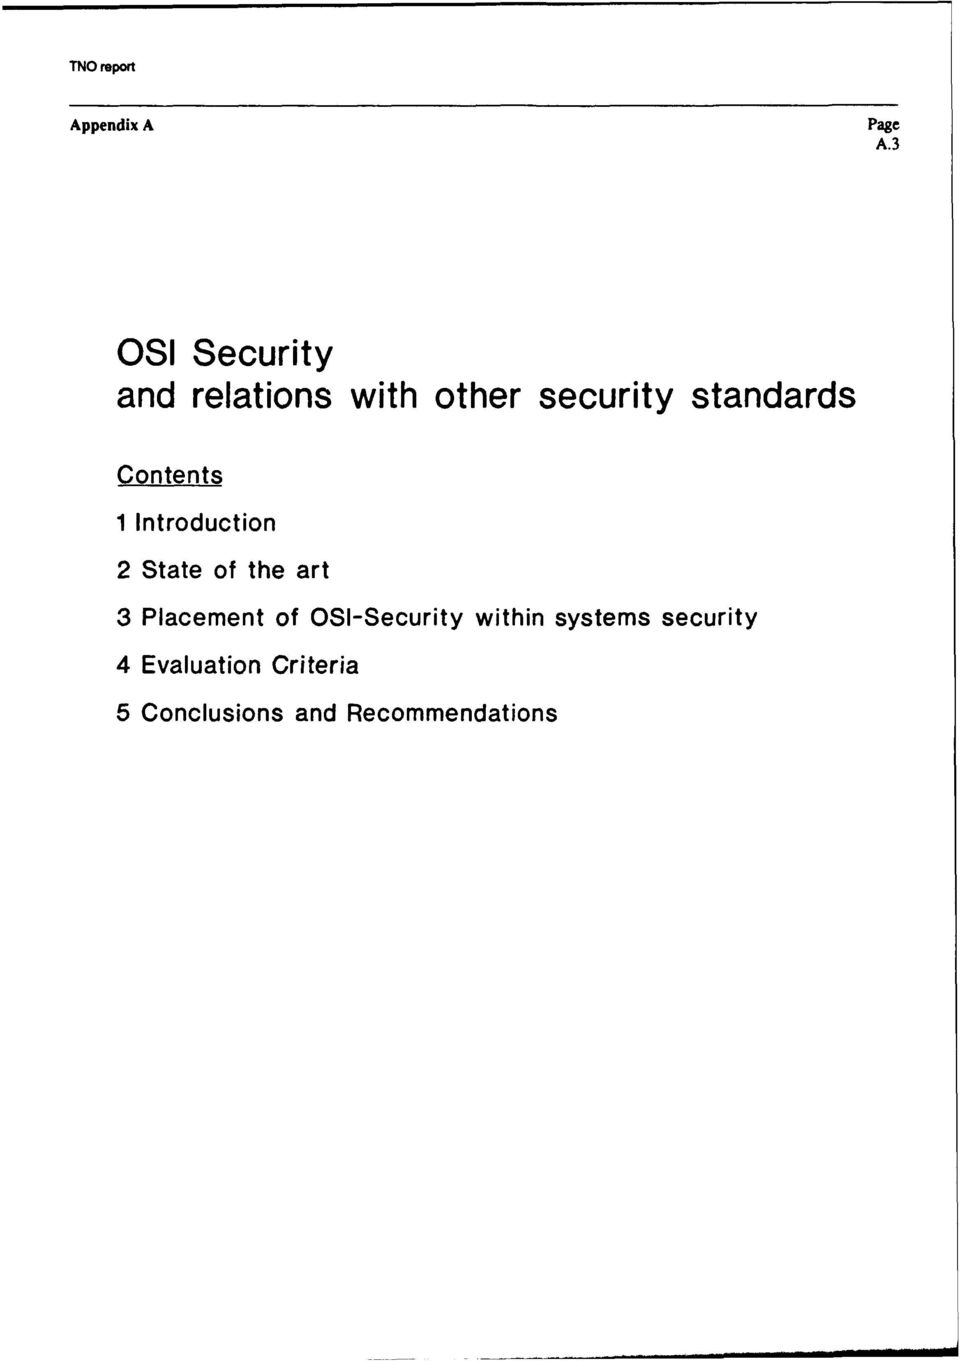 standards Contents 1 Introduction 2 State of the art 3